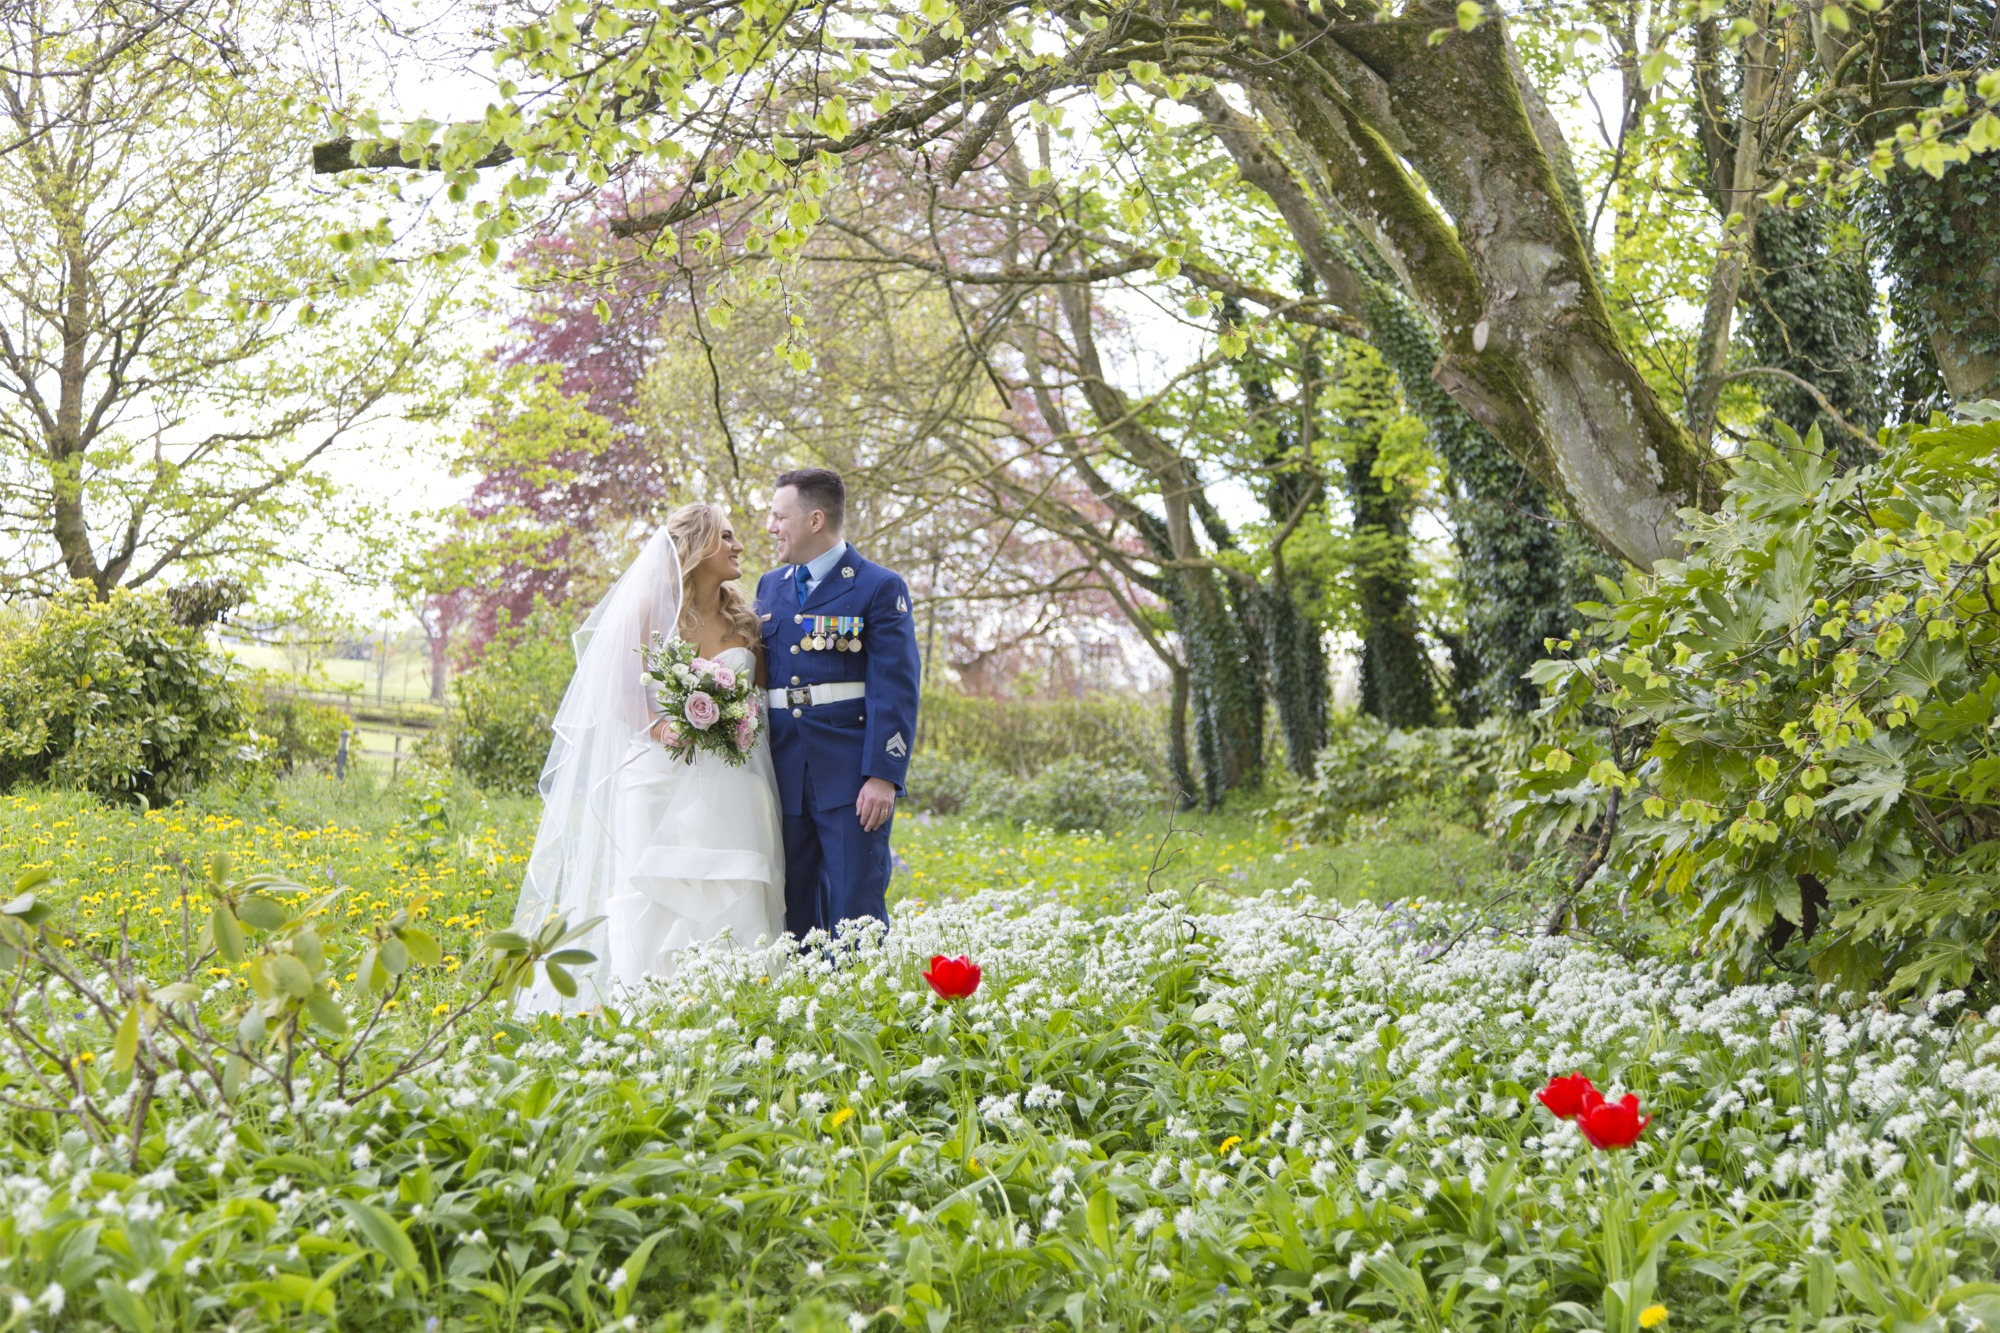 Wedding ceremony photographs by Wedding Photography Laois, Ireland